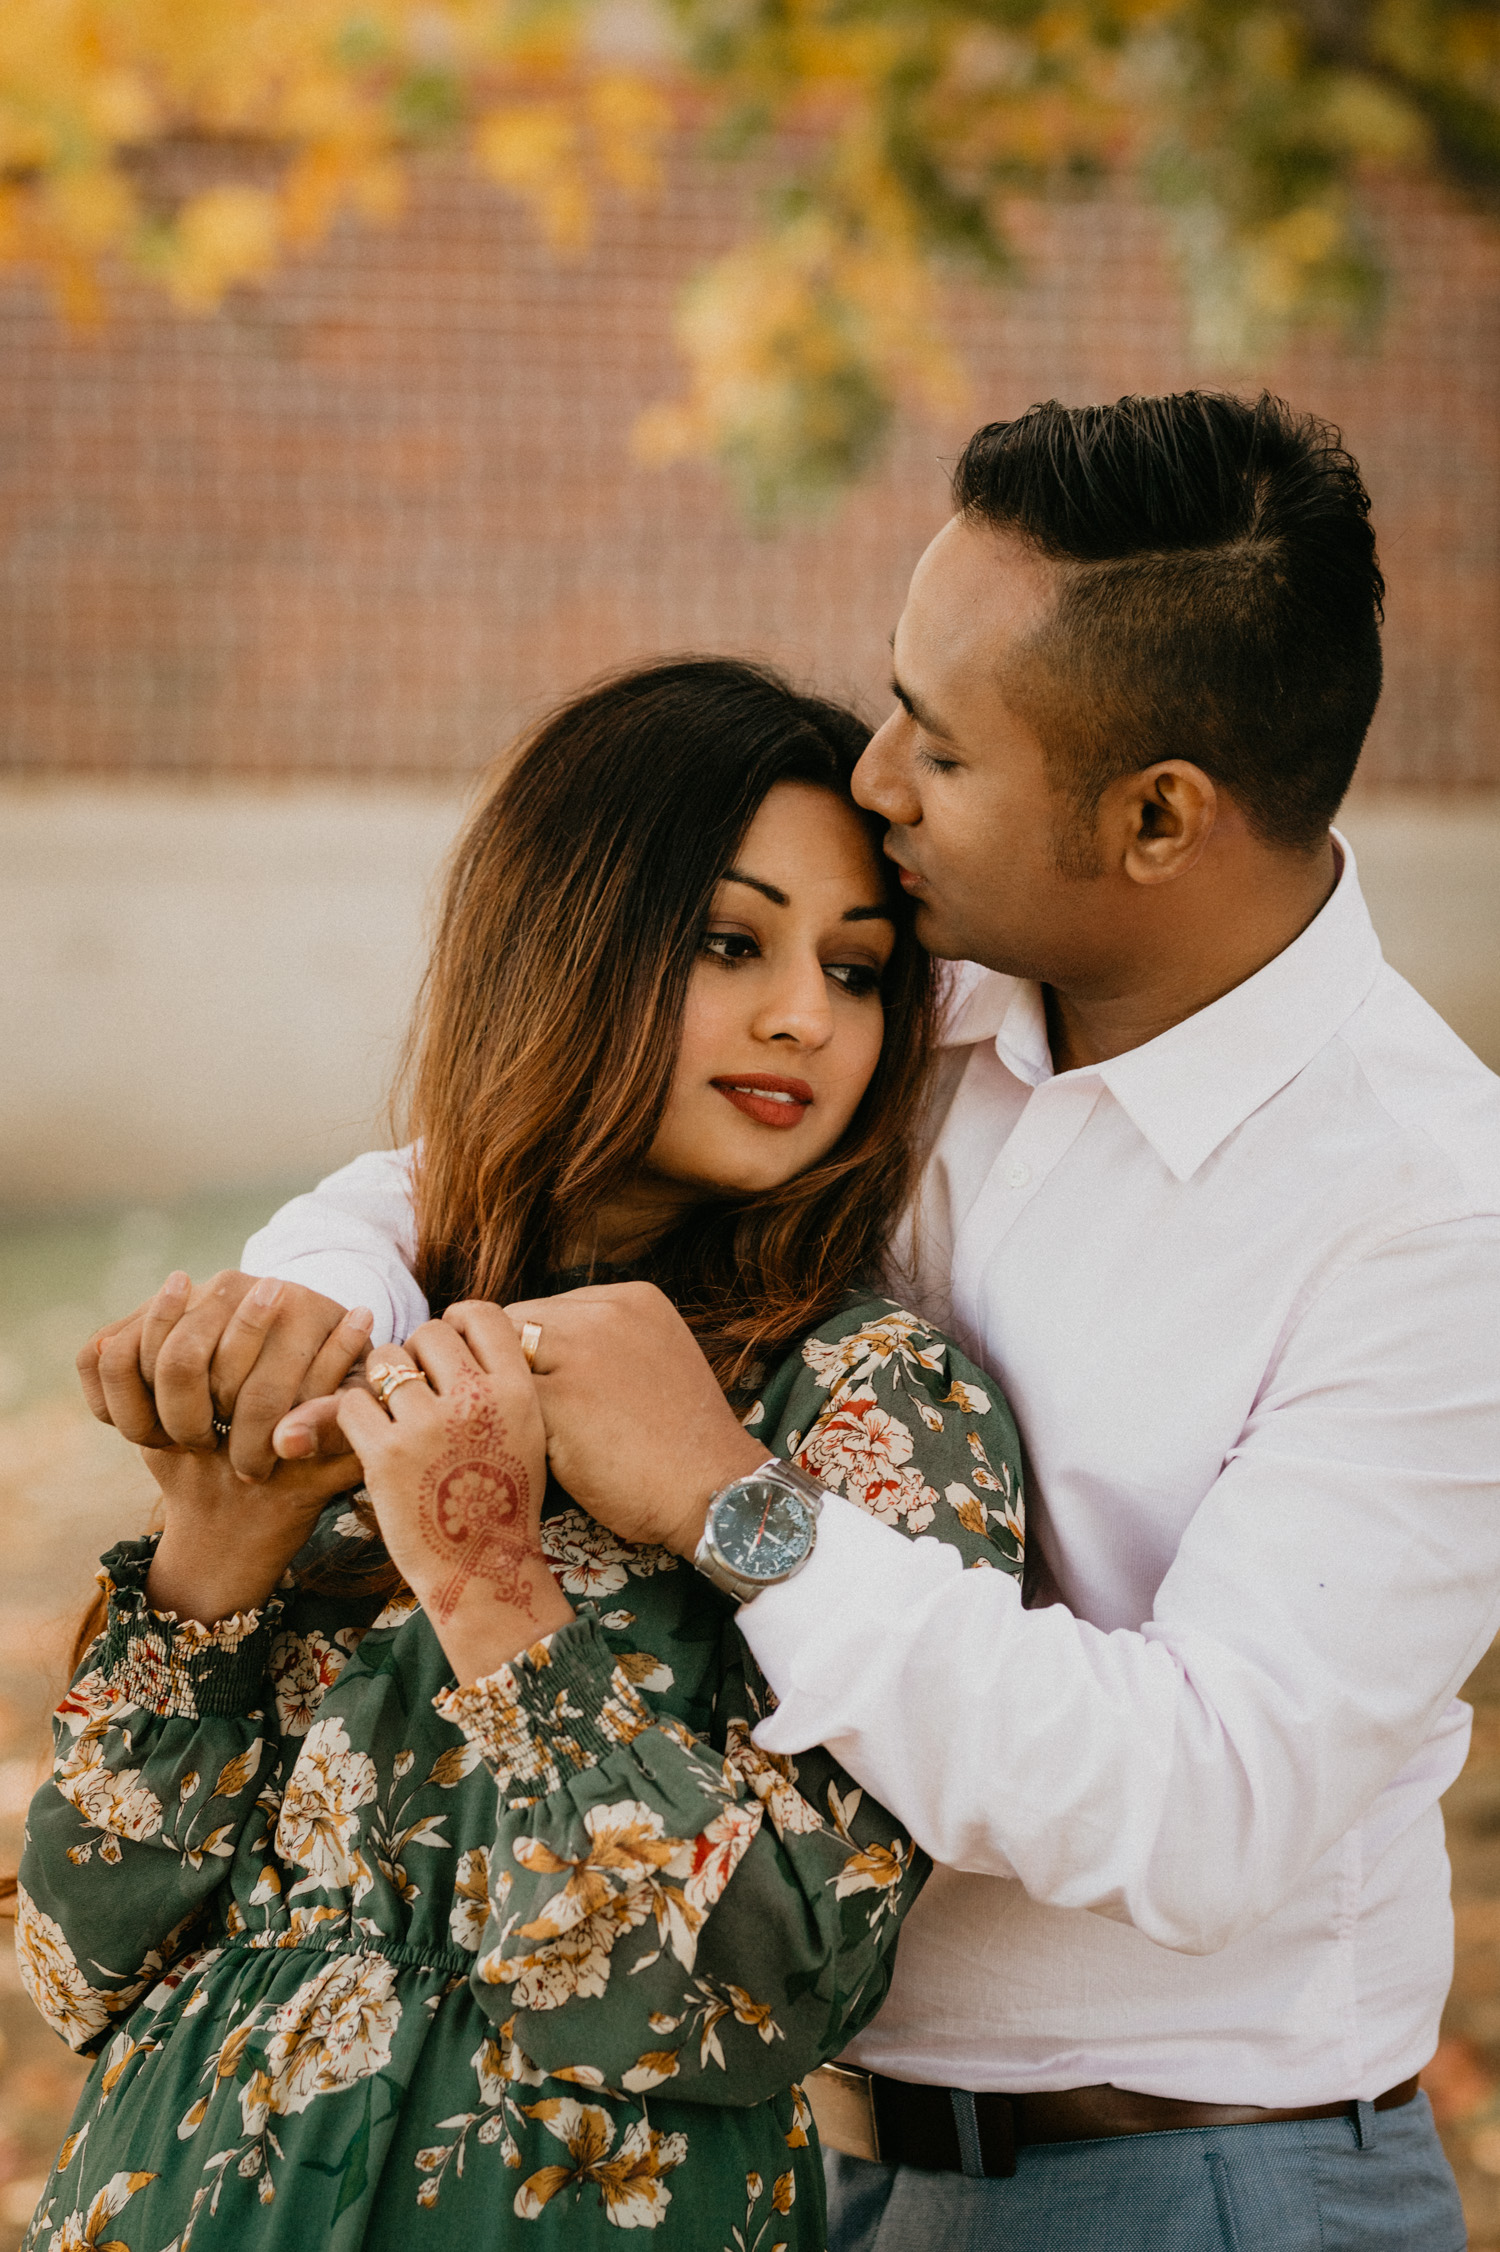 Meghna + Mark Engagement Akaness-20.jpg